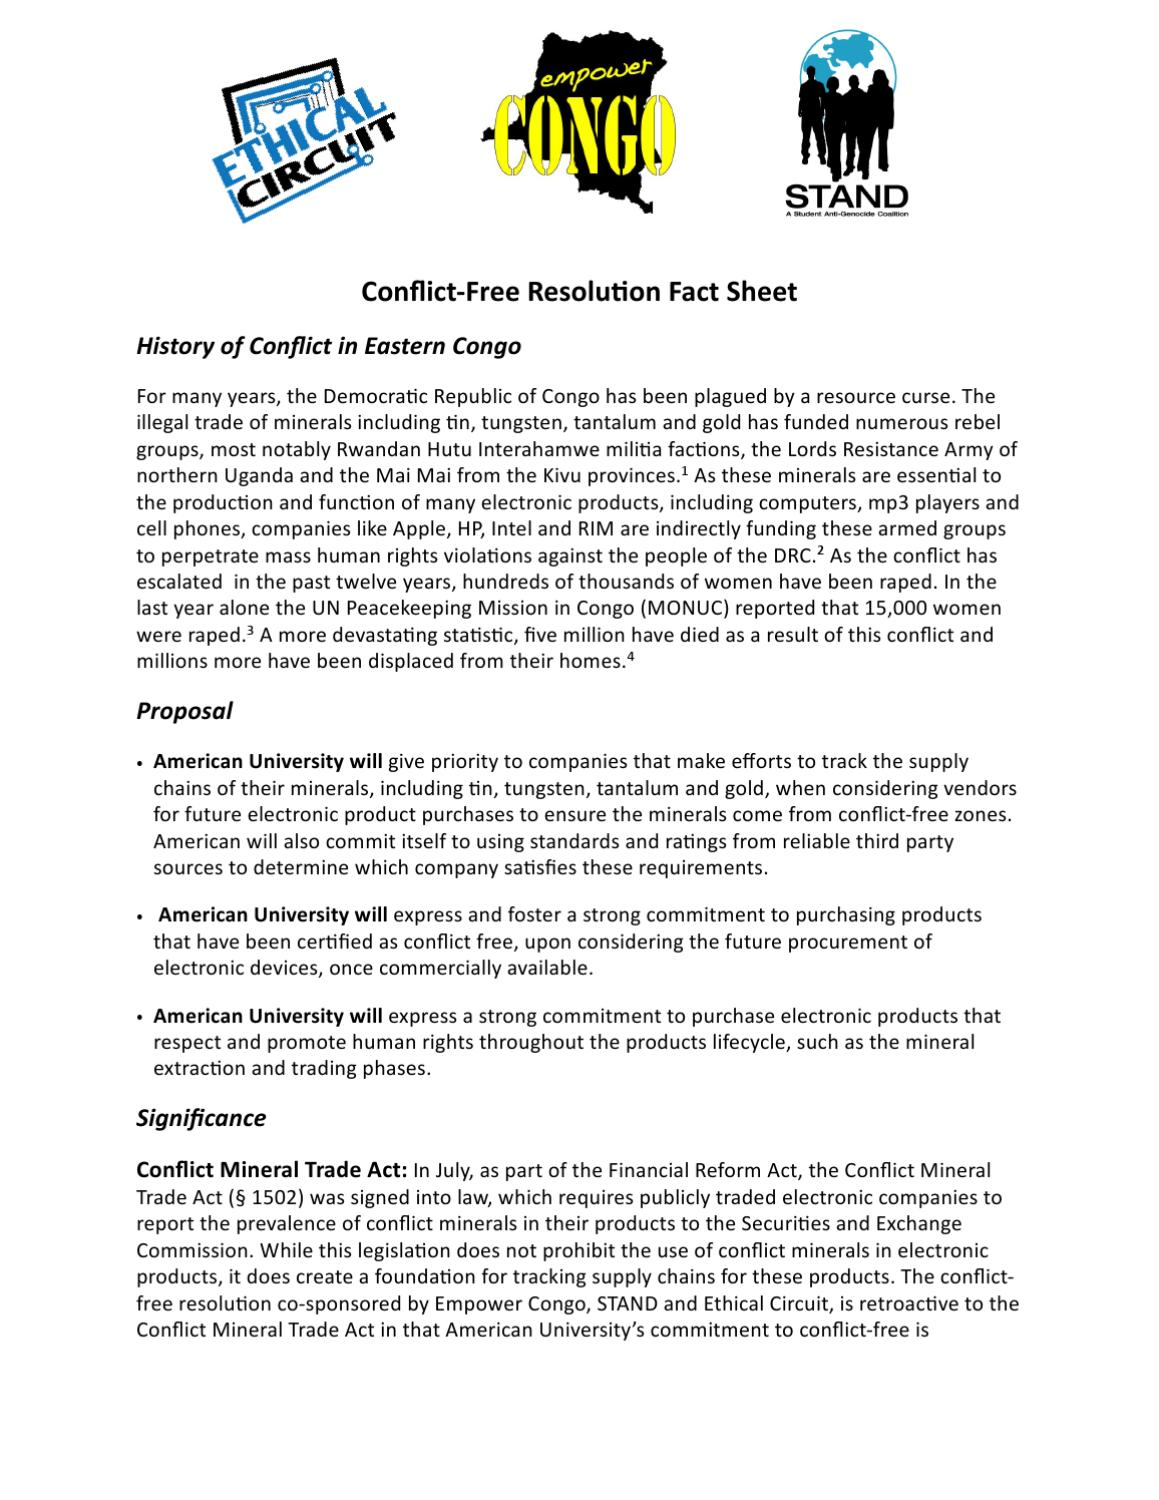 Conflict Mineral Resolution Fact Sheet by Aaron Alberico - issuu